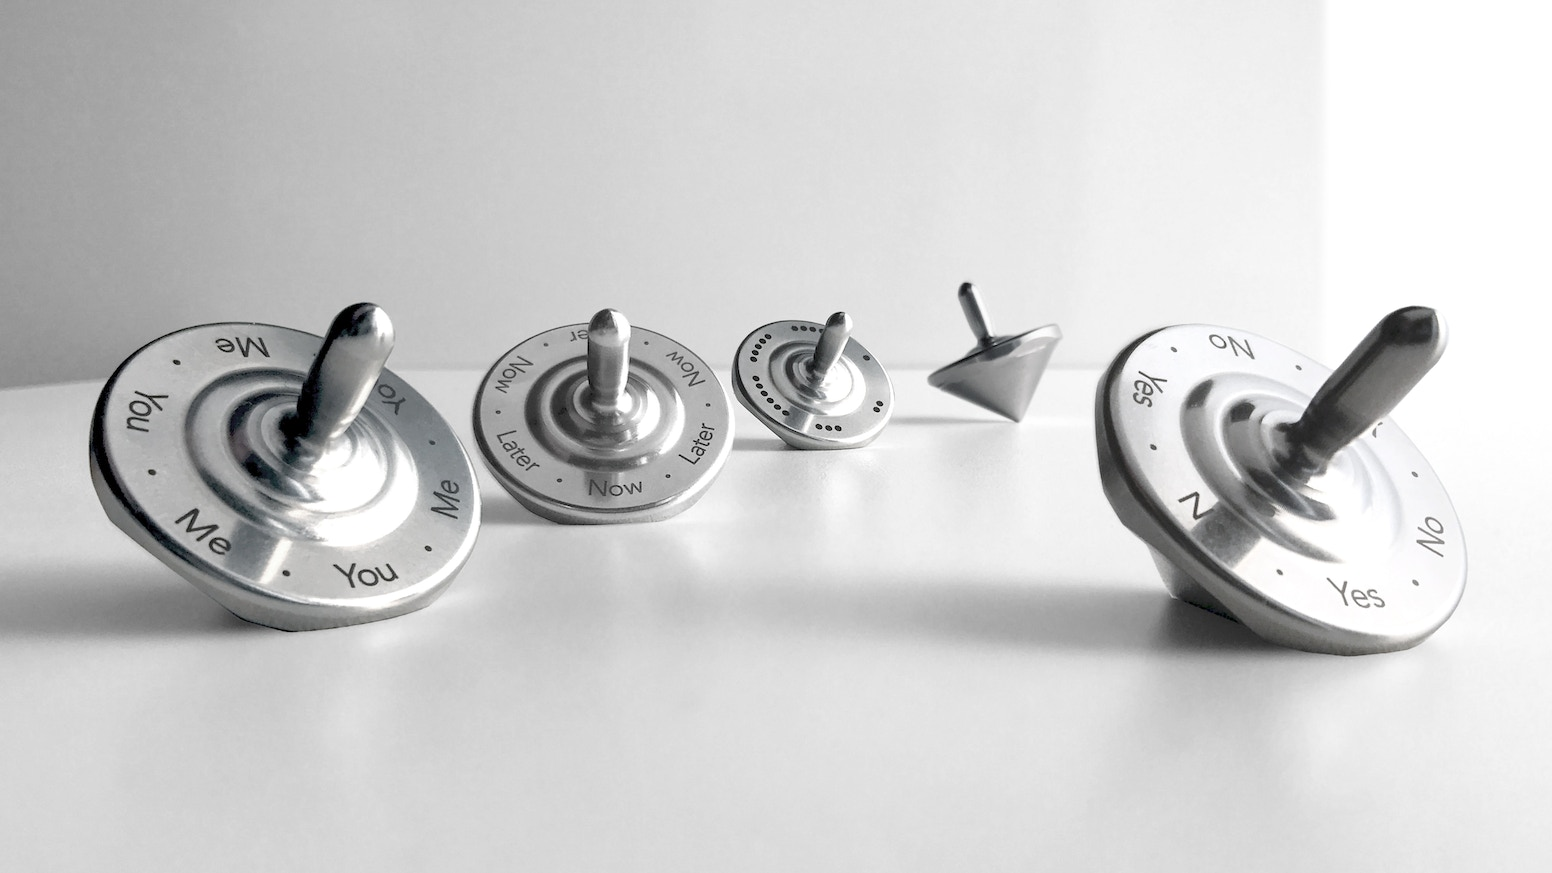 Precise, perfectly-balanced, stainless steel spinning tops designed to make everyday decision-making more fun!